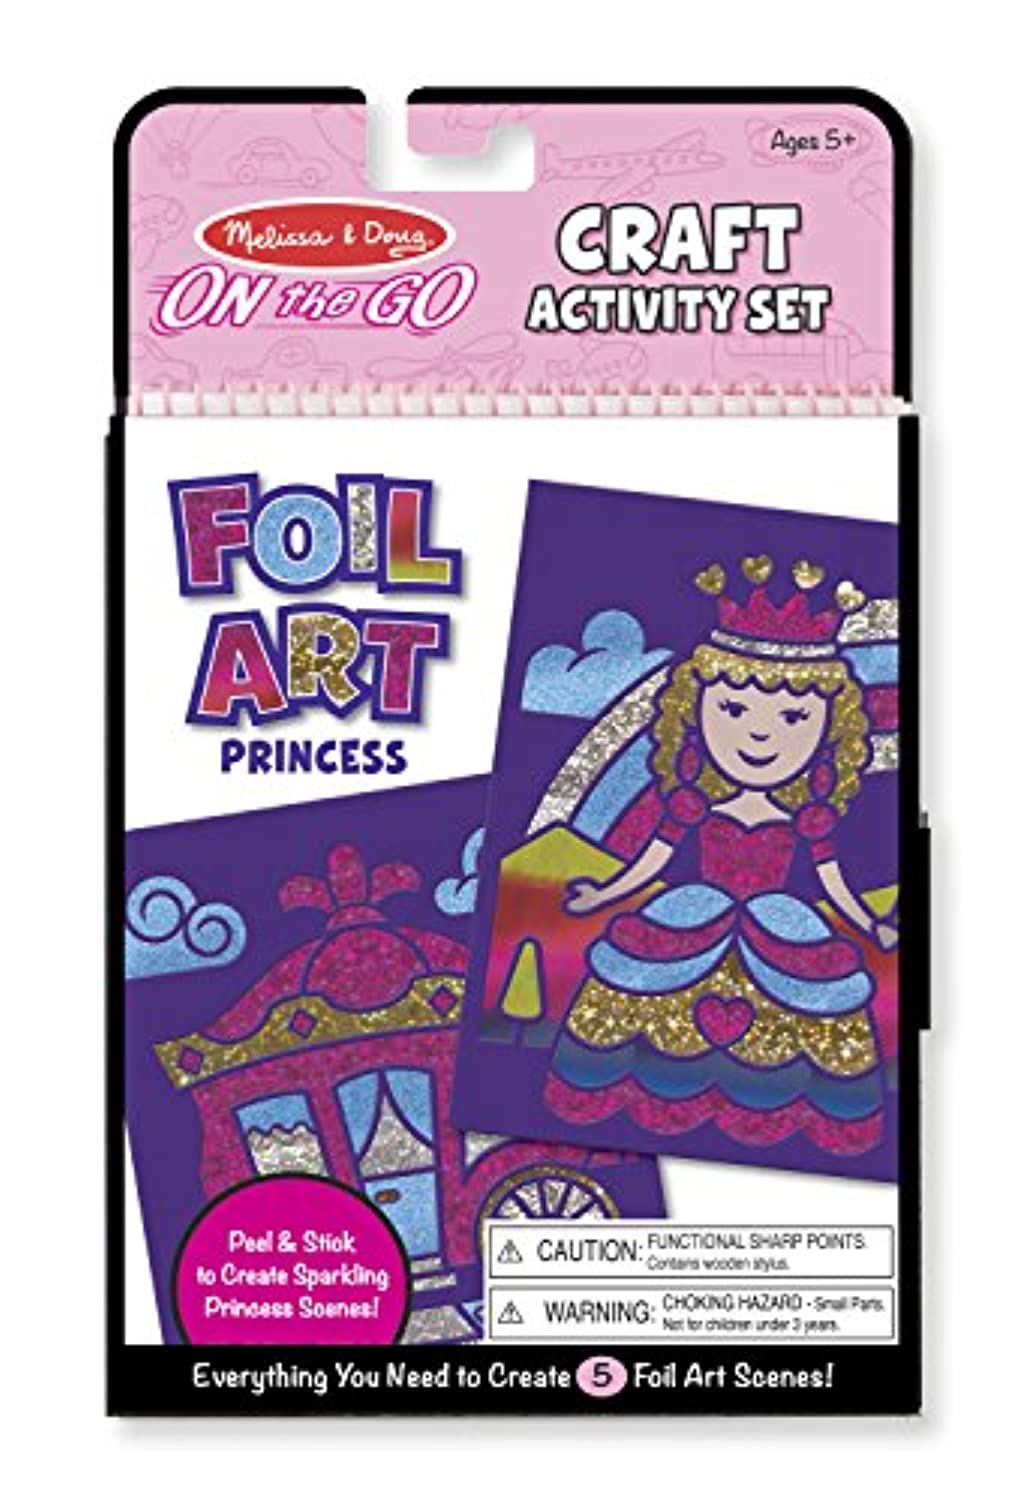 Melissa & Doug On The Go Foilアートクラフトアクティビティキット – プリンセス